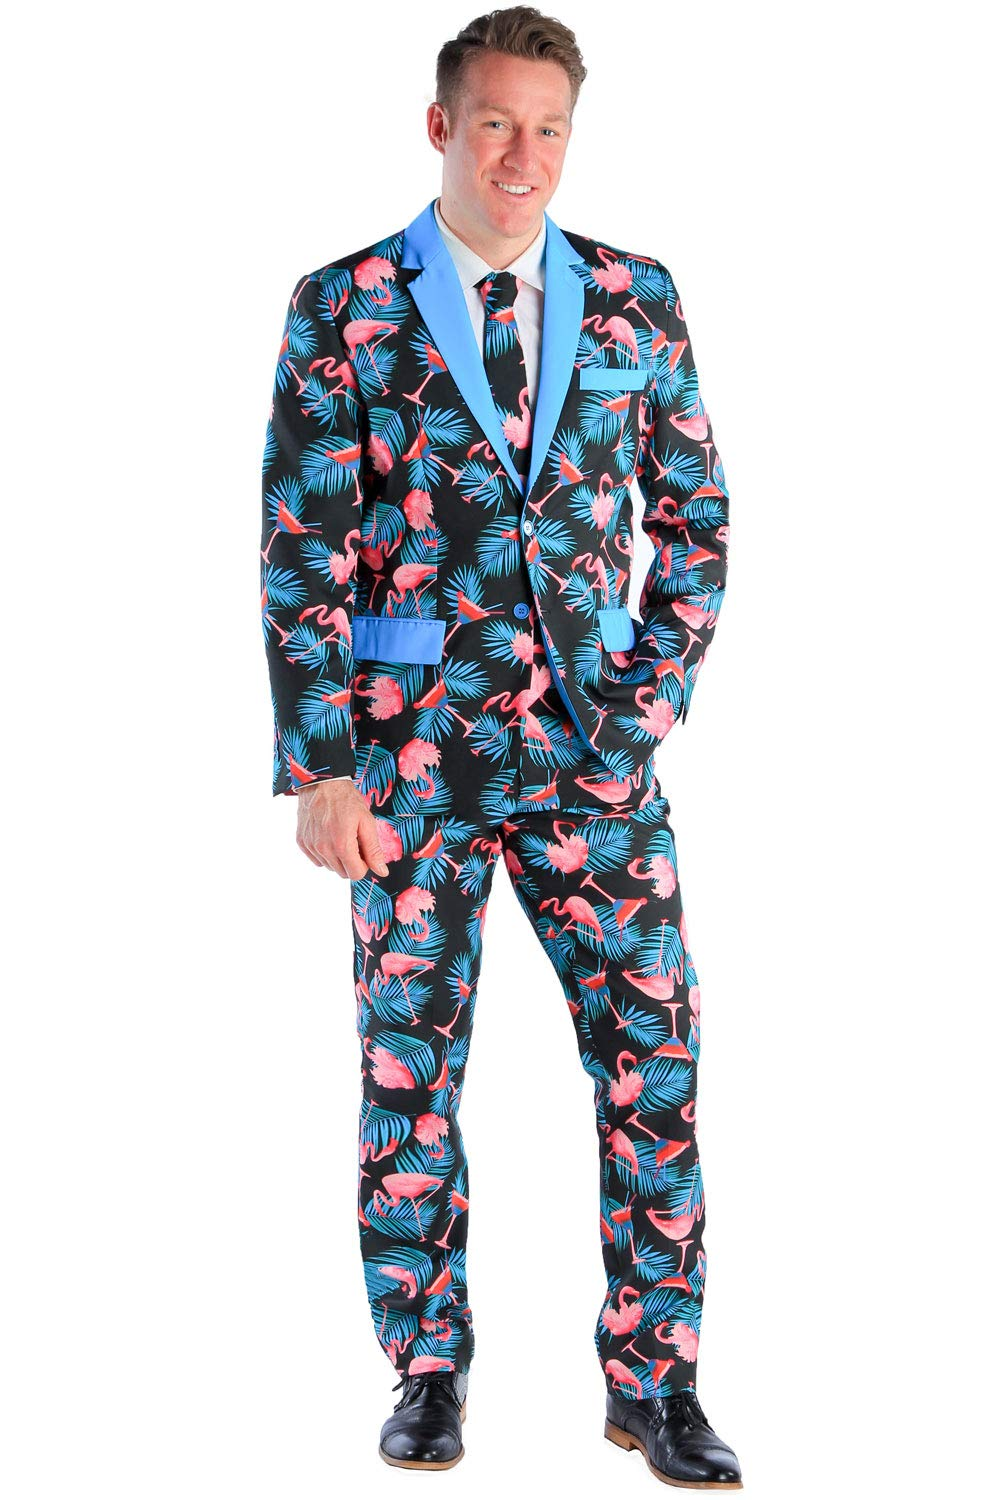 Men's Tall Martini Suit Blazer with Tie - Flamingo Martini Suit Jacket for Guys by Tipsy Elves